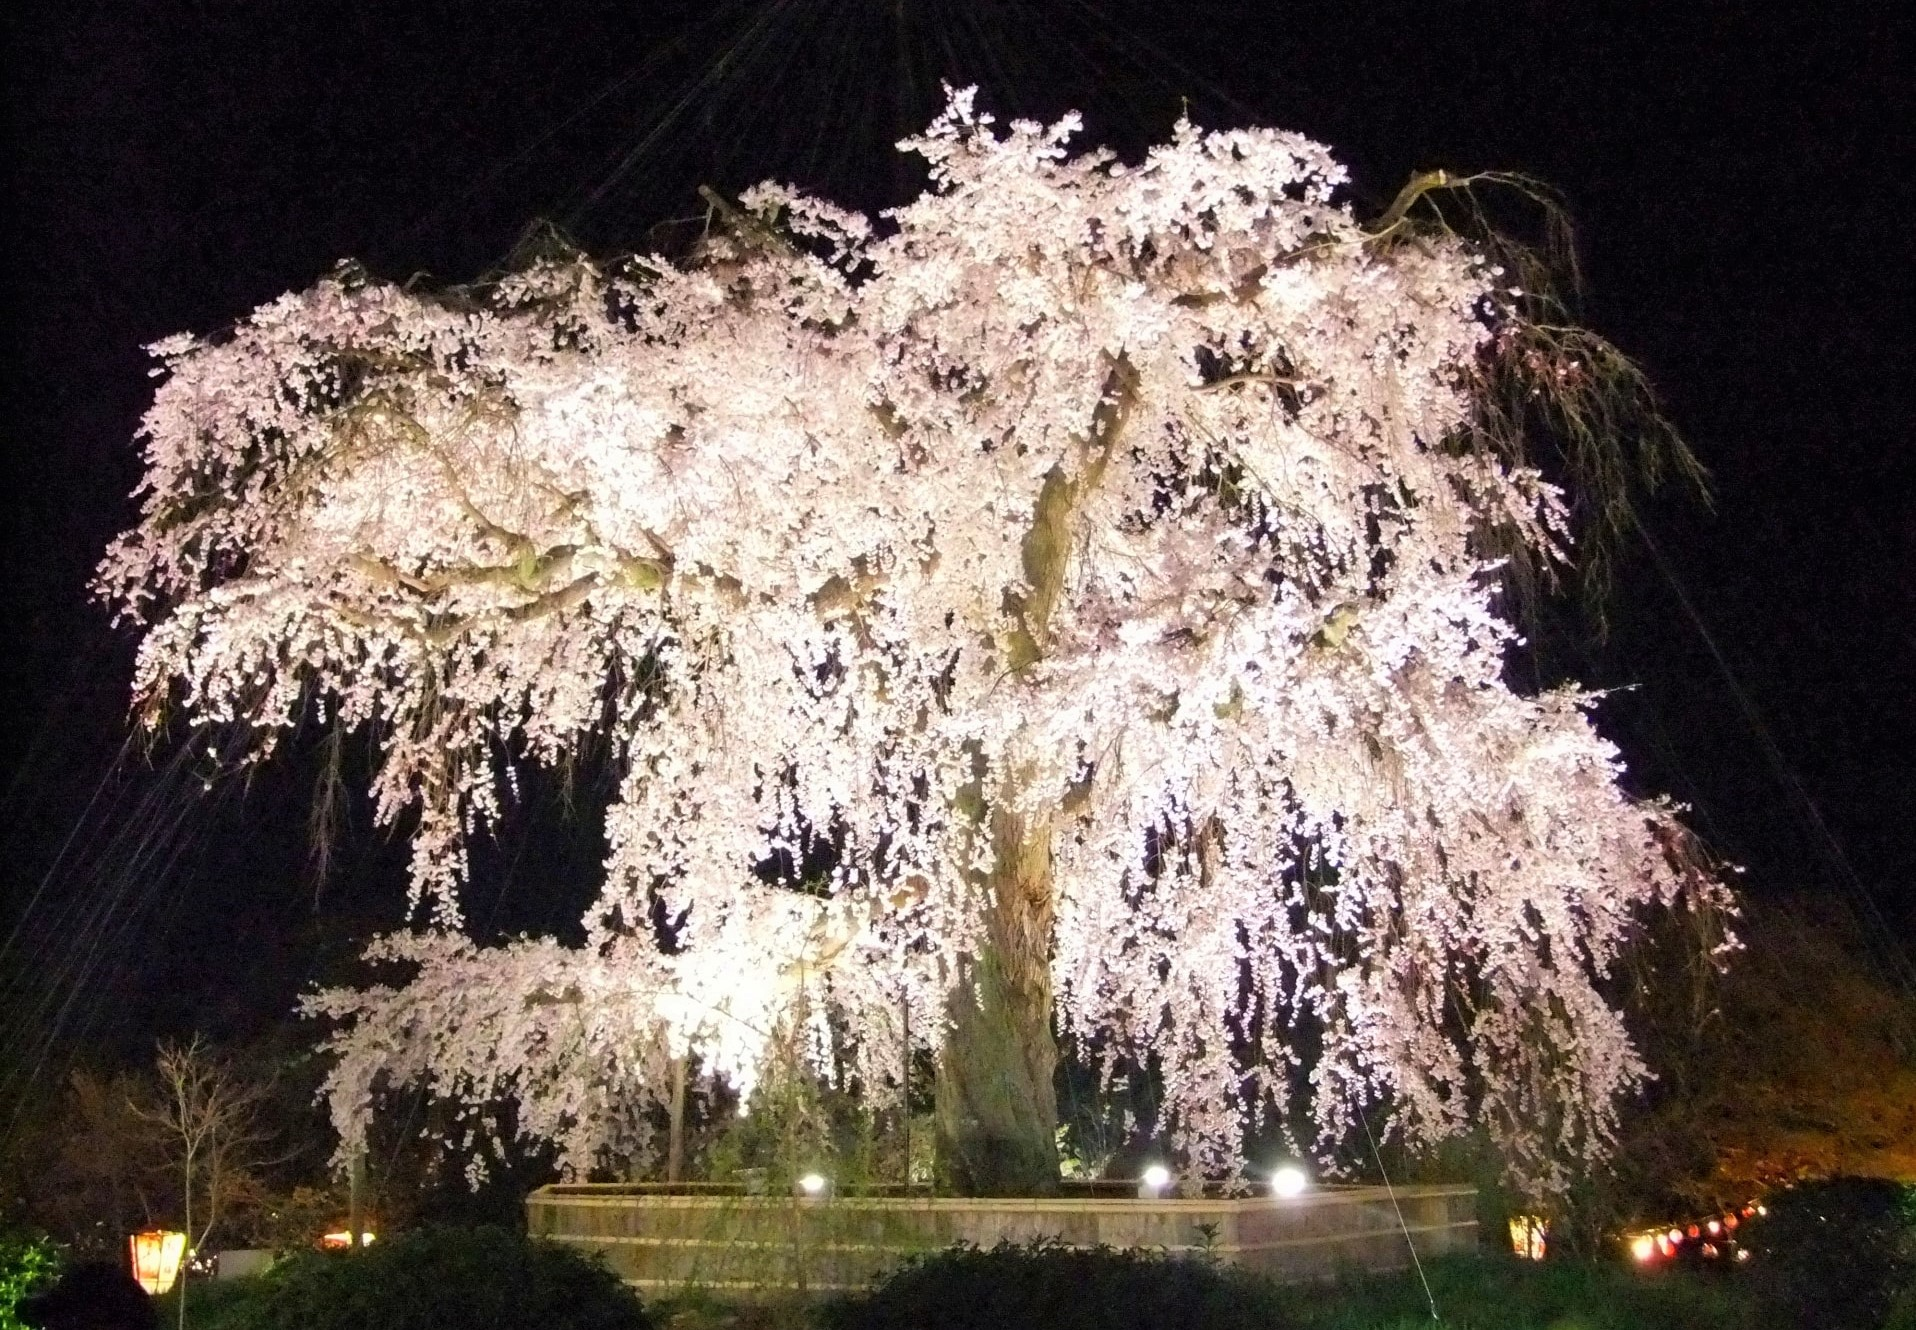 The magnificent cherry tree illuminated at night